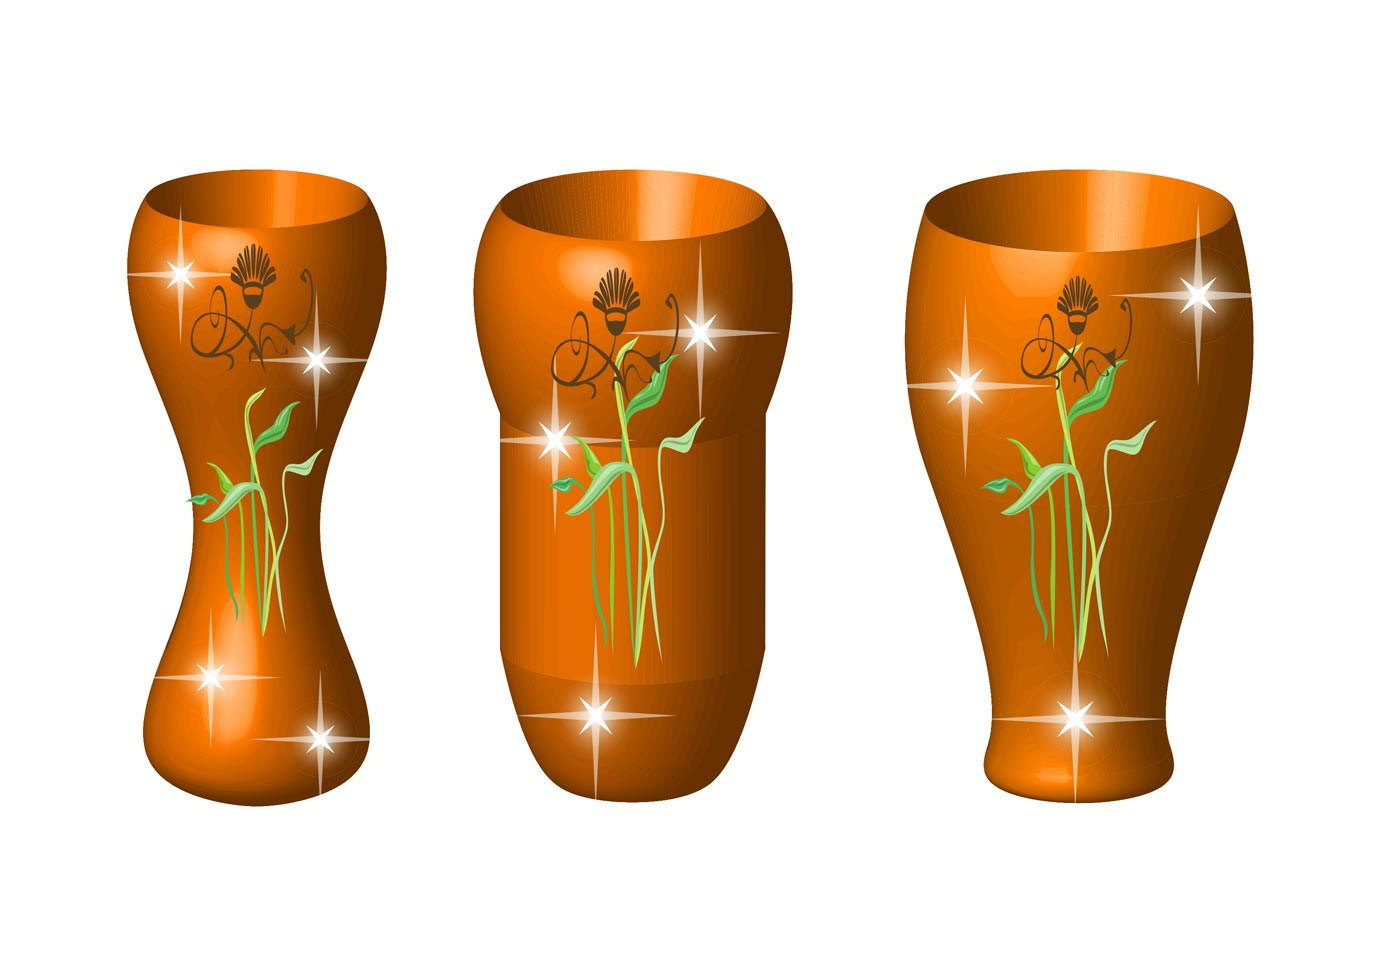 Glass Lamp Vector Vases With Flowers - Download Free Vector Art, Stock